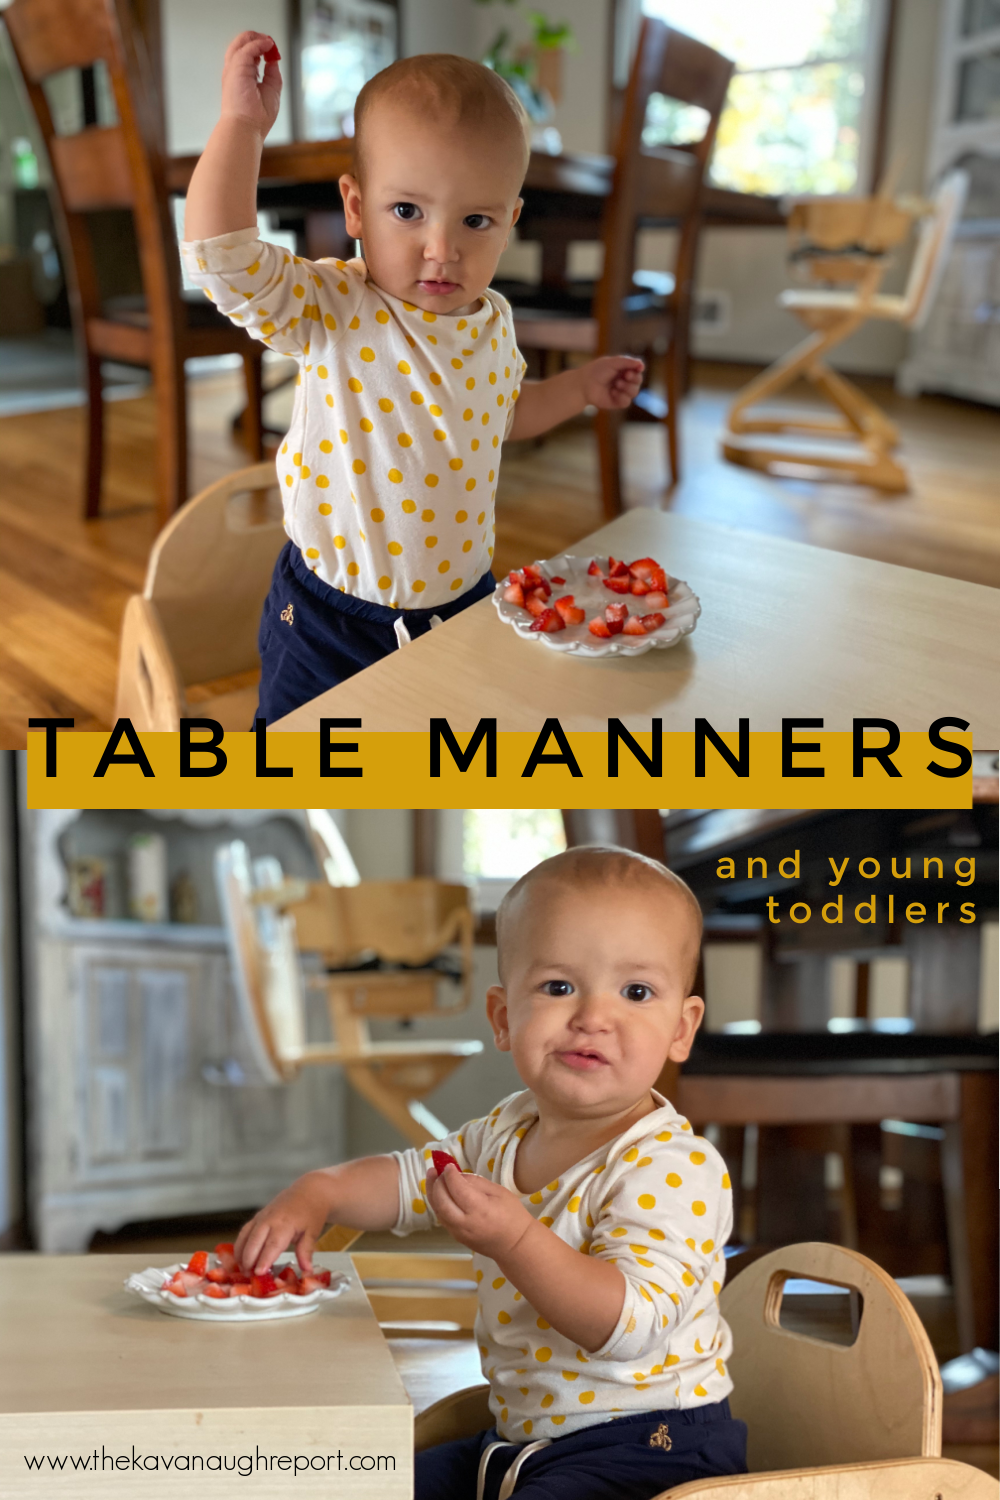 Montessori parenting advice for toddlers and mealtimes. Here's a look at how we approach meals and manners with a 1-year-old.